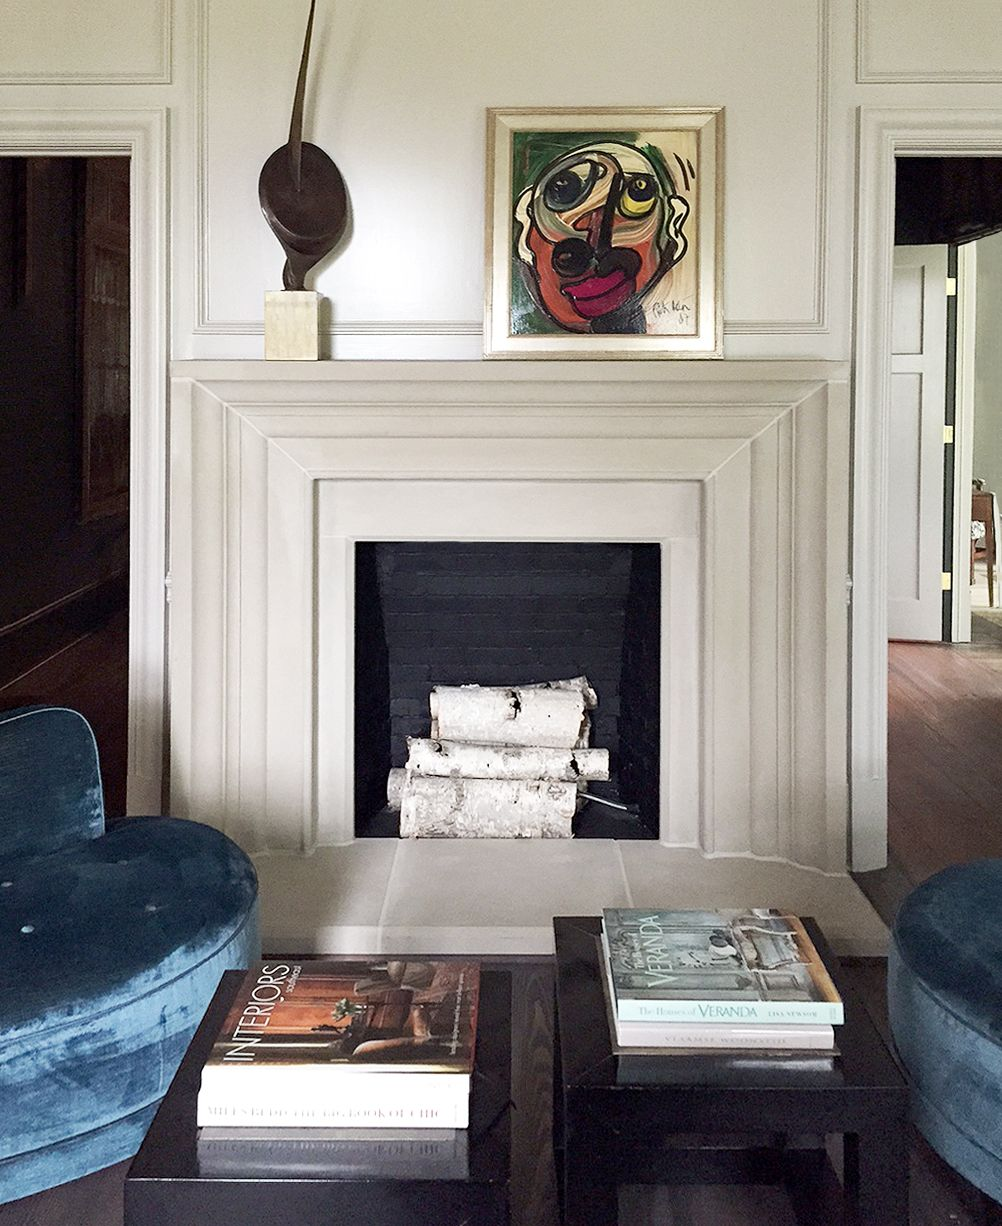 The classic mantel design has a simple and clean linear quality with